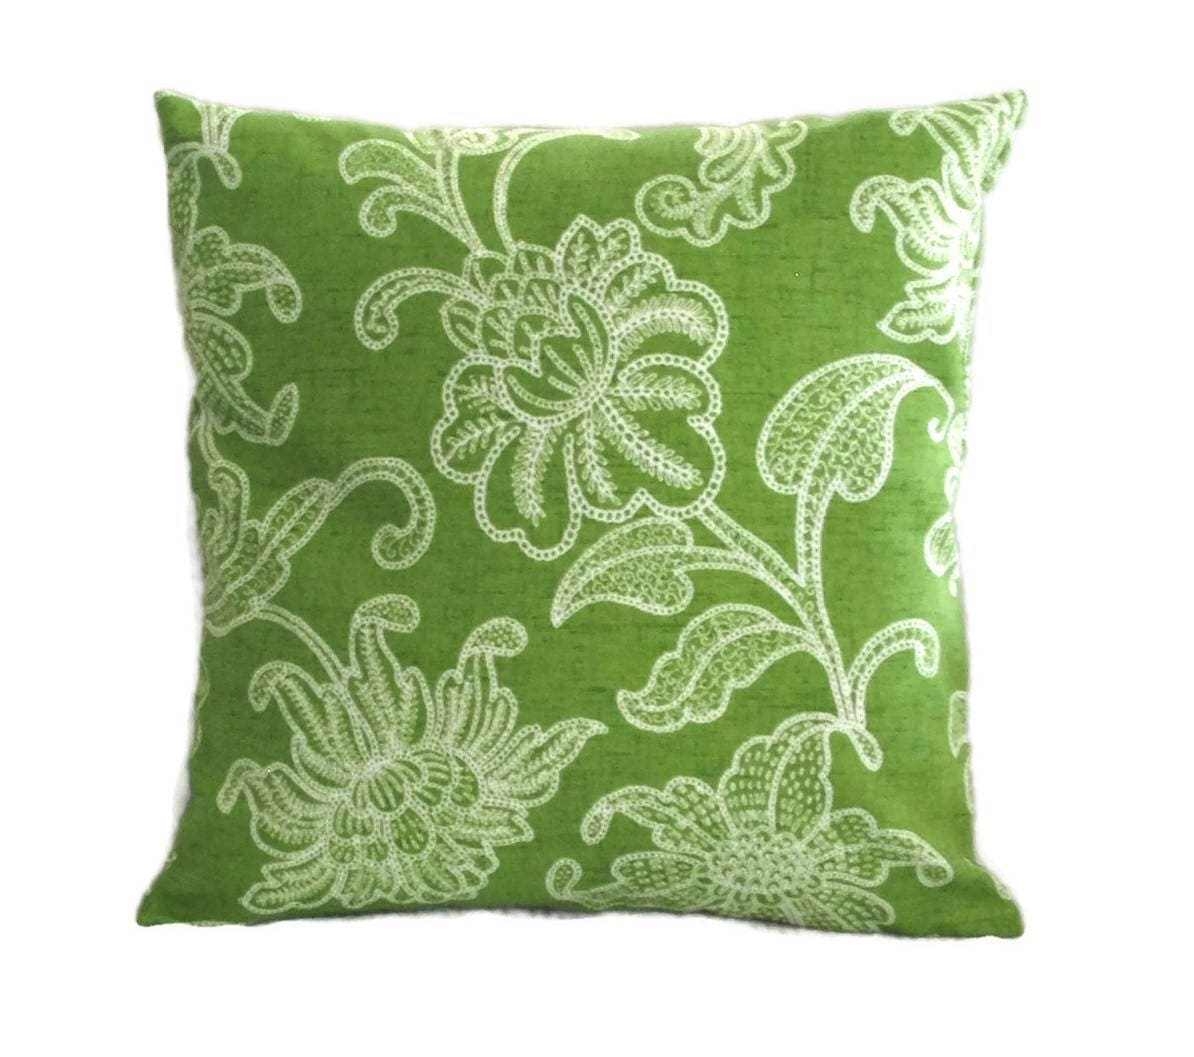 Indoor Outdoor Pillow Cover In Bright Green And White Floral Design